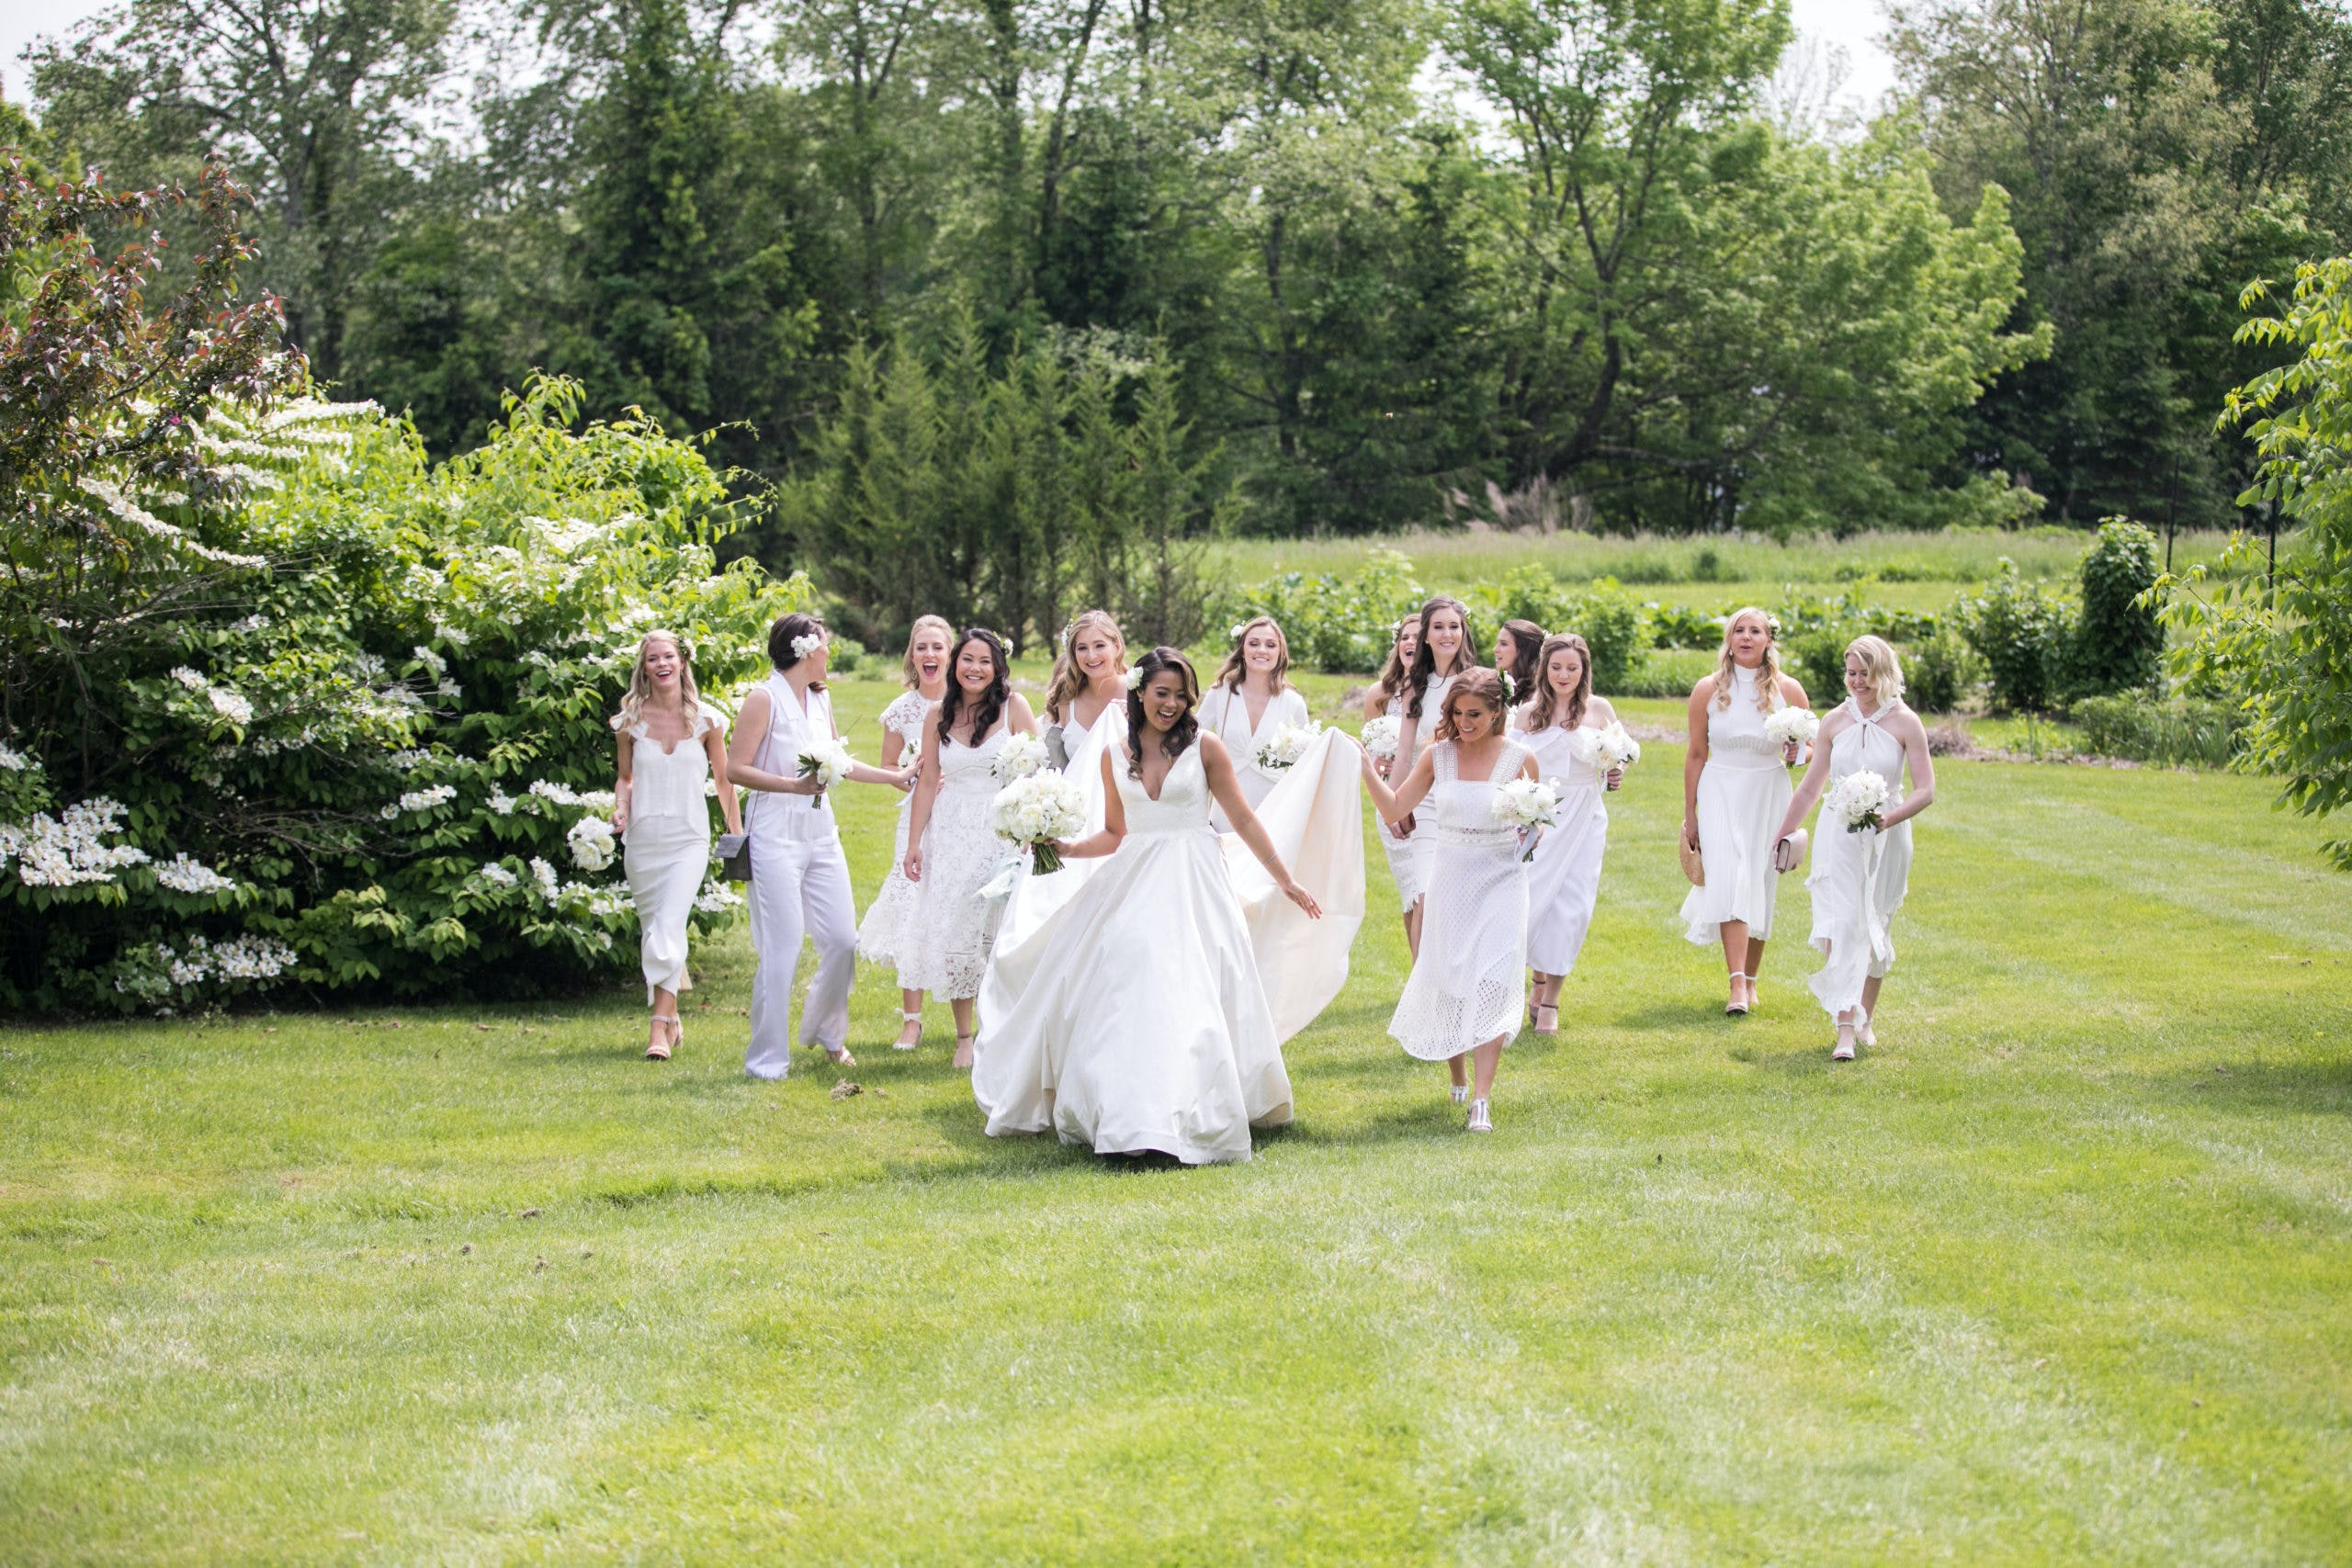 Bridal party in all white running through greenery field   PartySlate